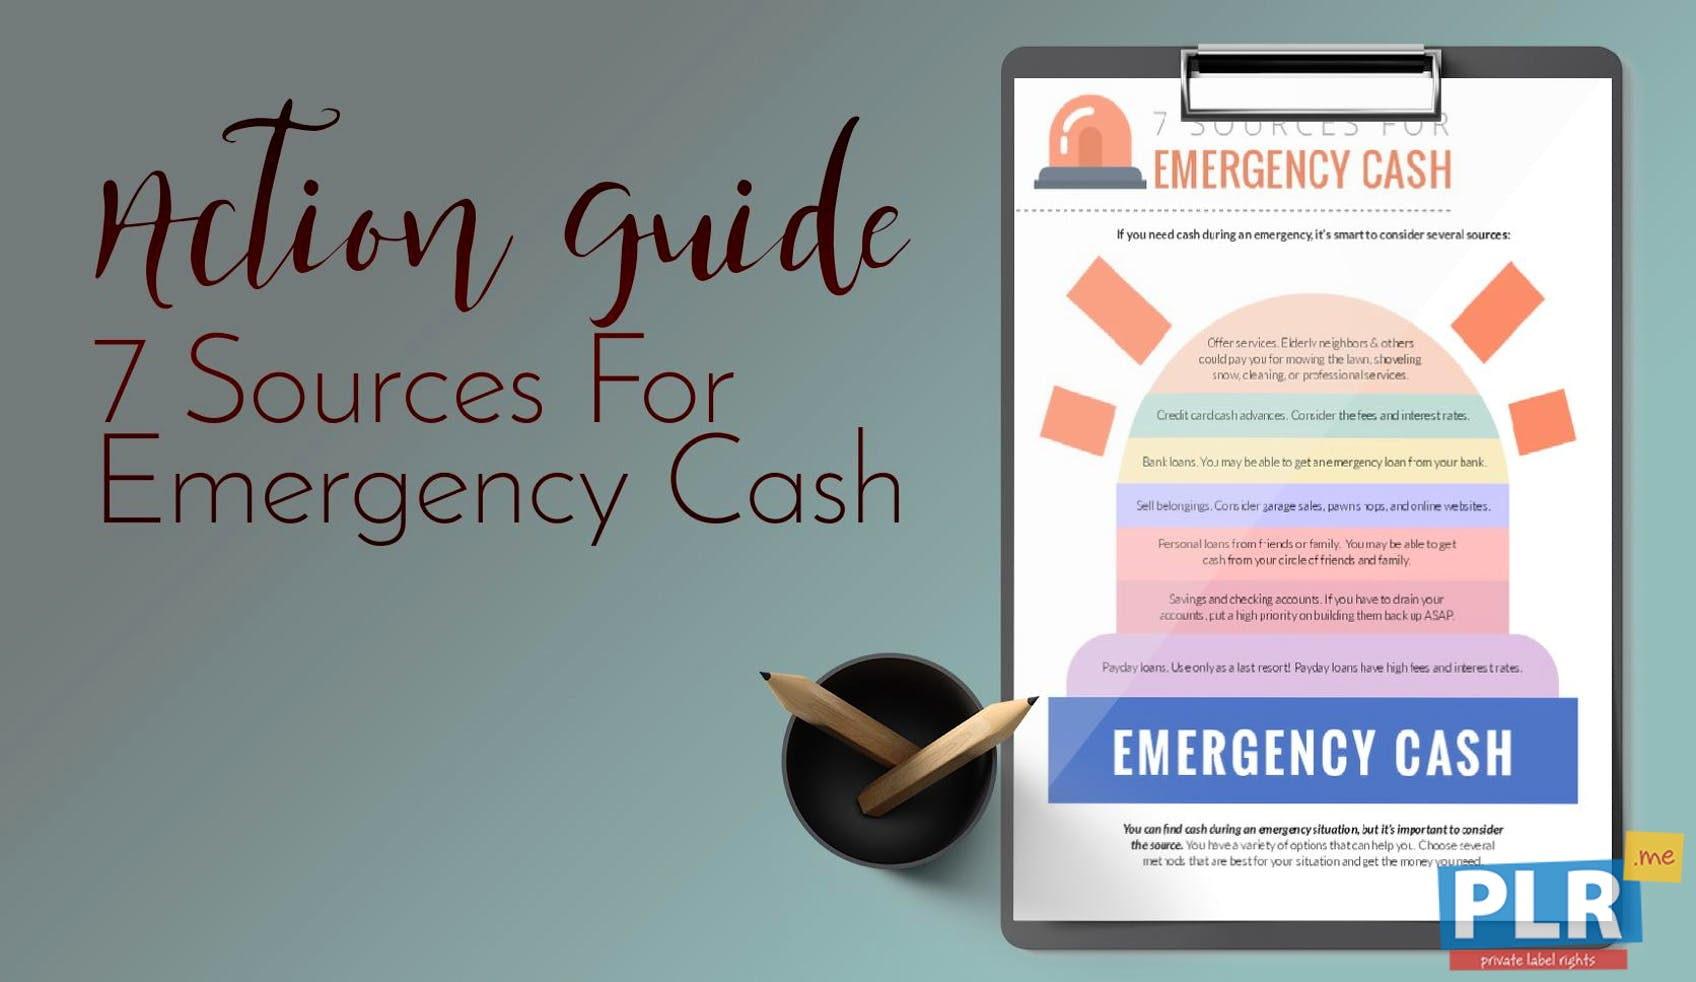 7 Sources For Emergency Cash